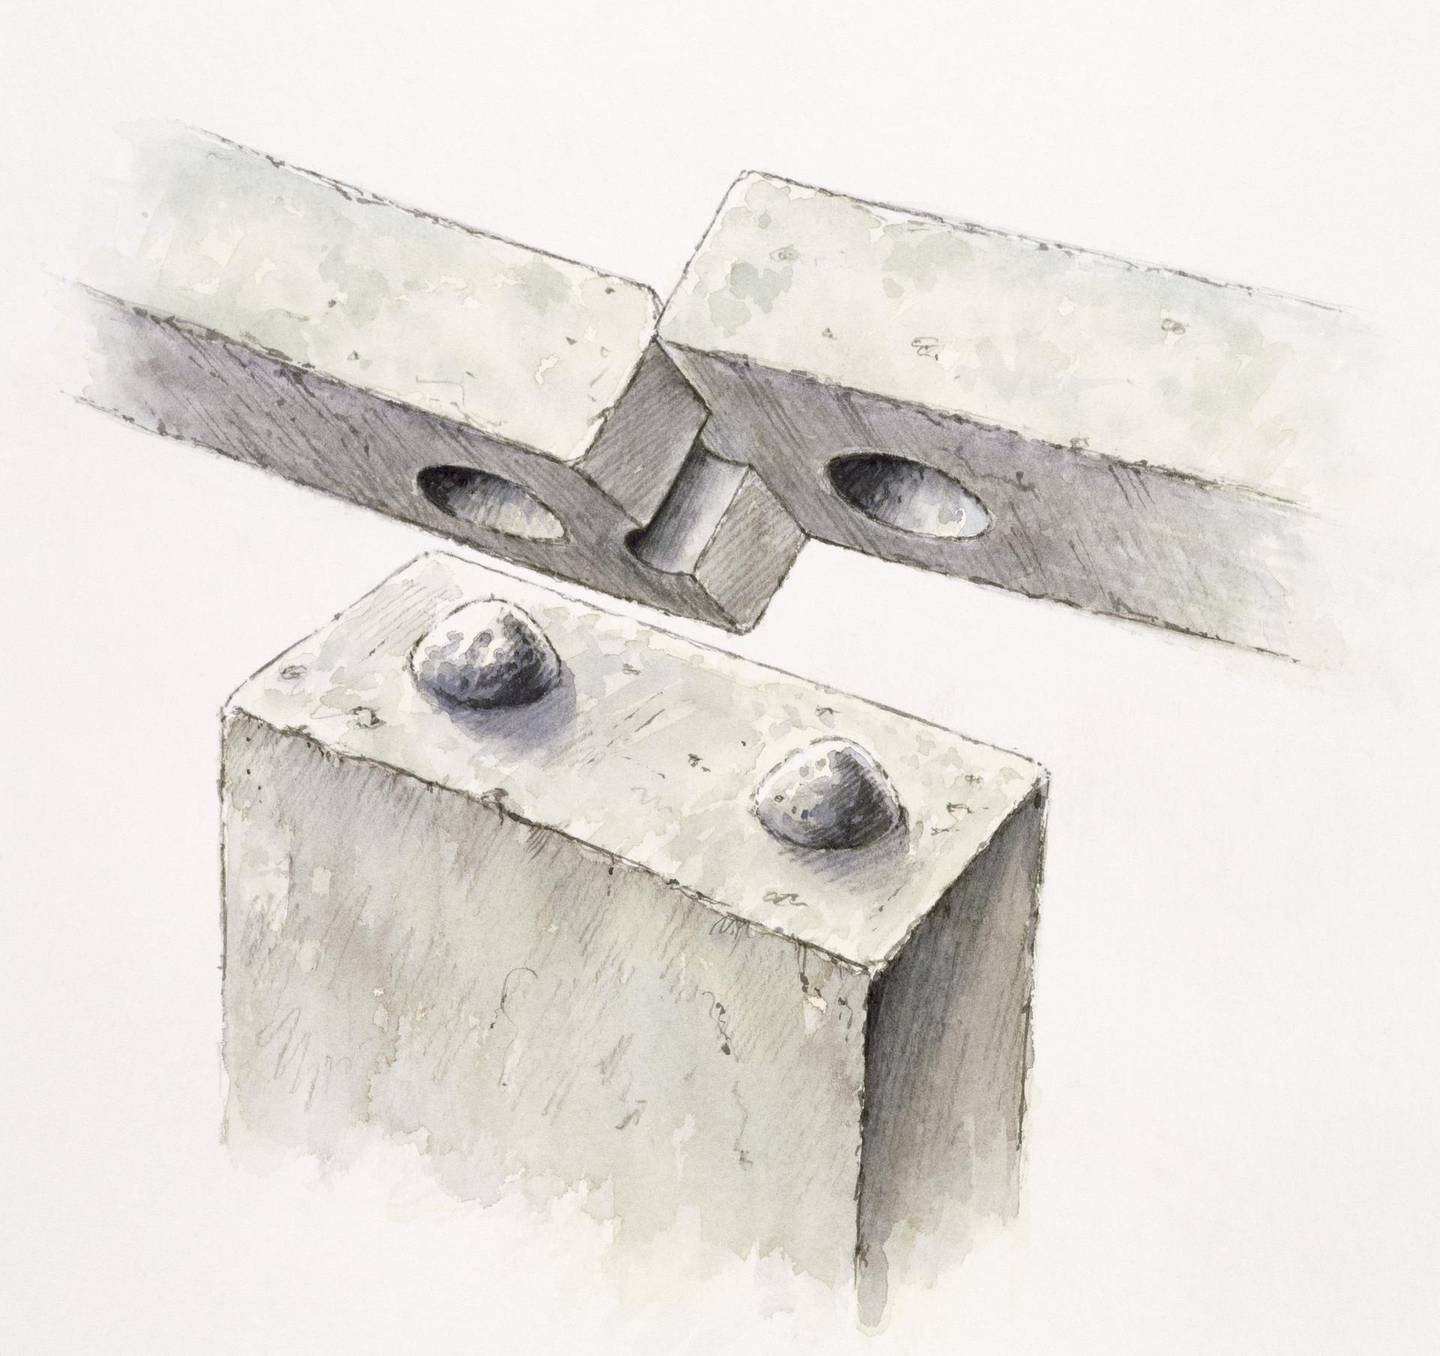 STONEHENGE  Reconstuction drawing by Peter DUNN showing tongue and groove and mortice and tenon joints used to link and secure lintels